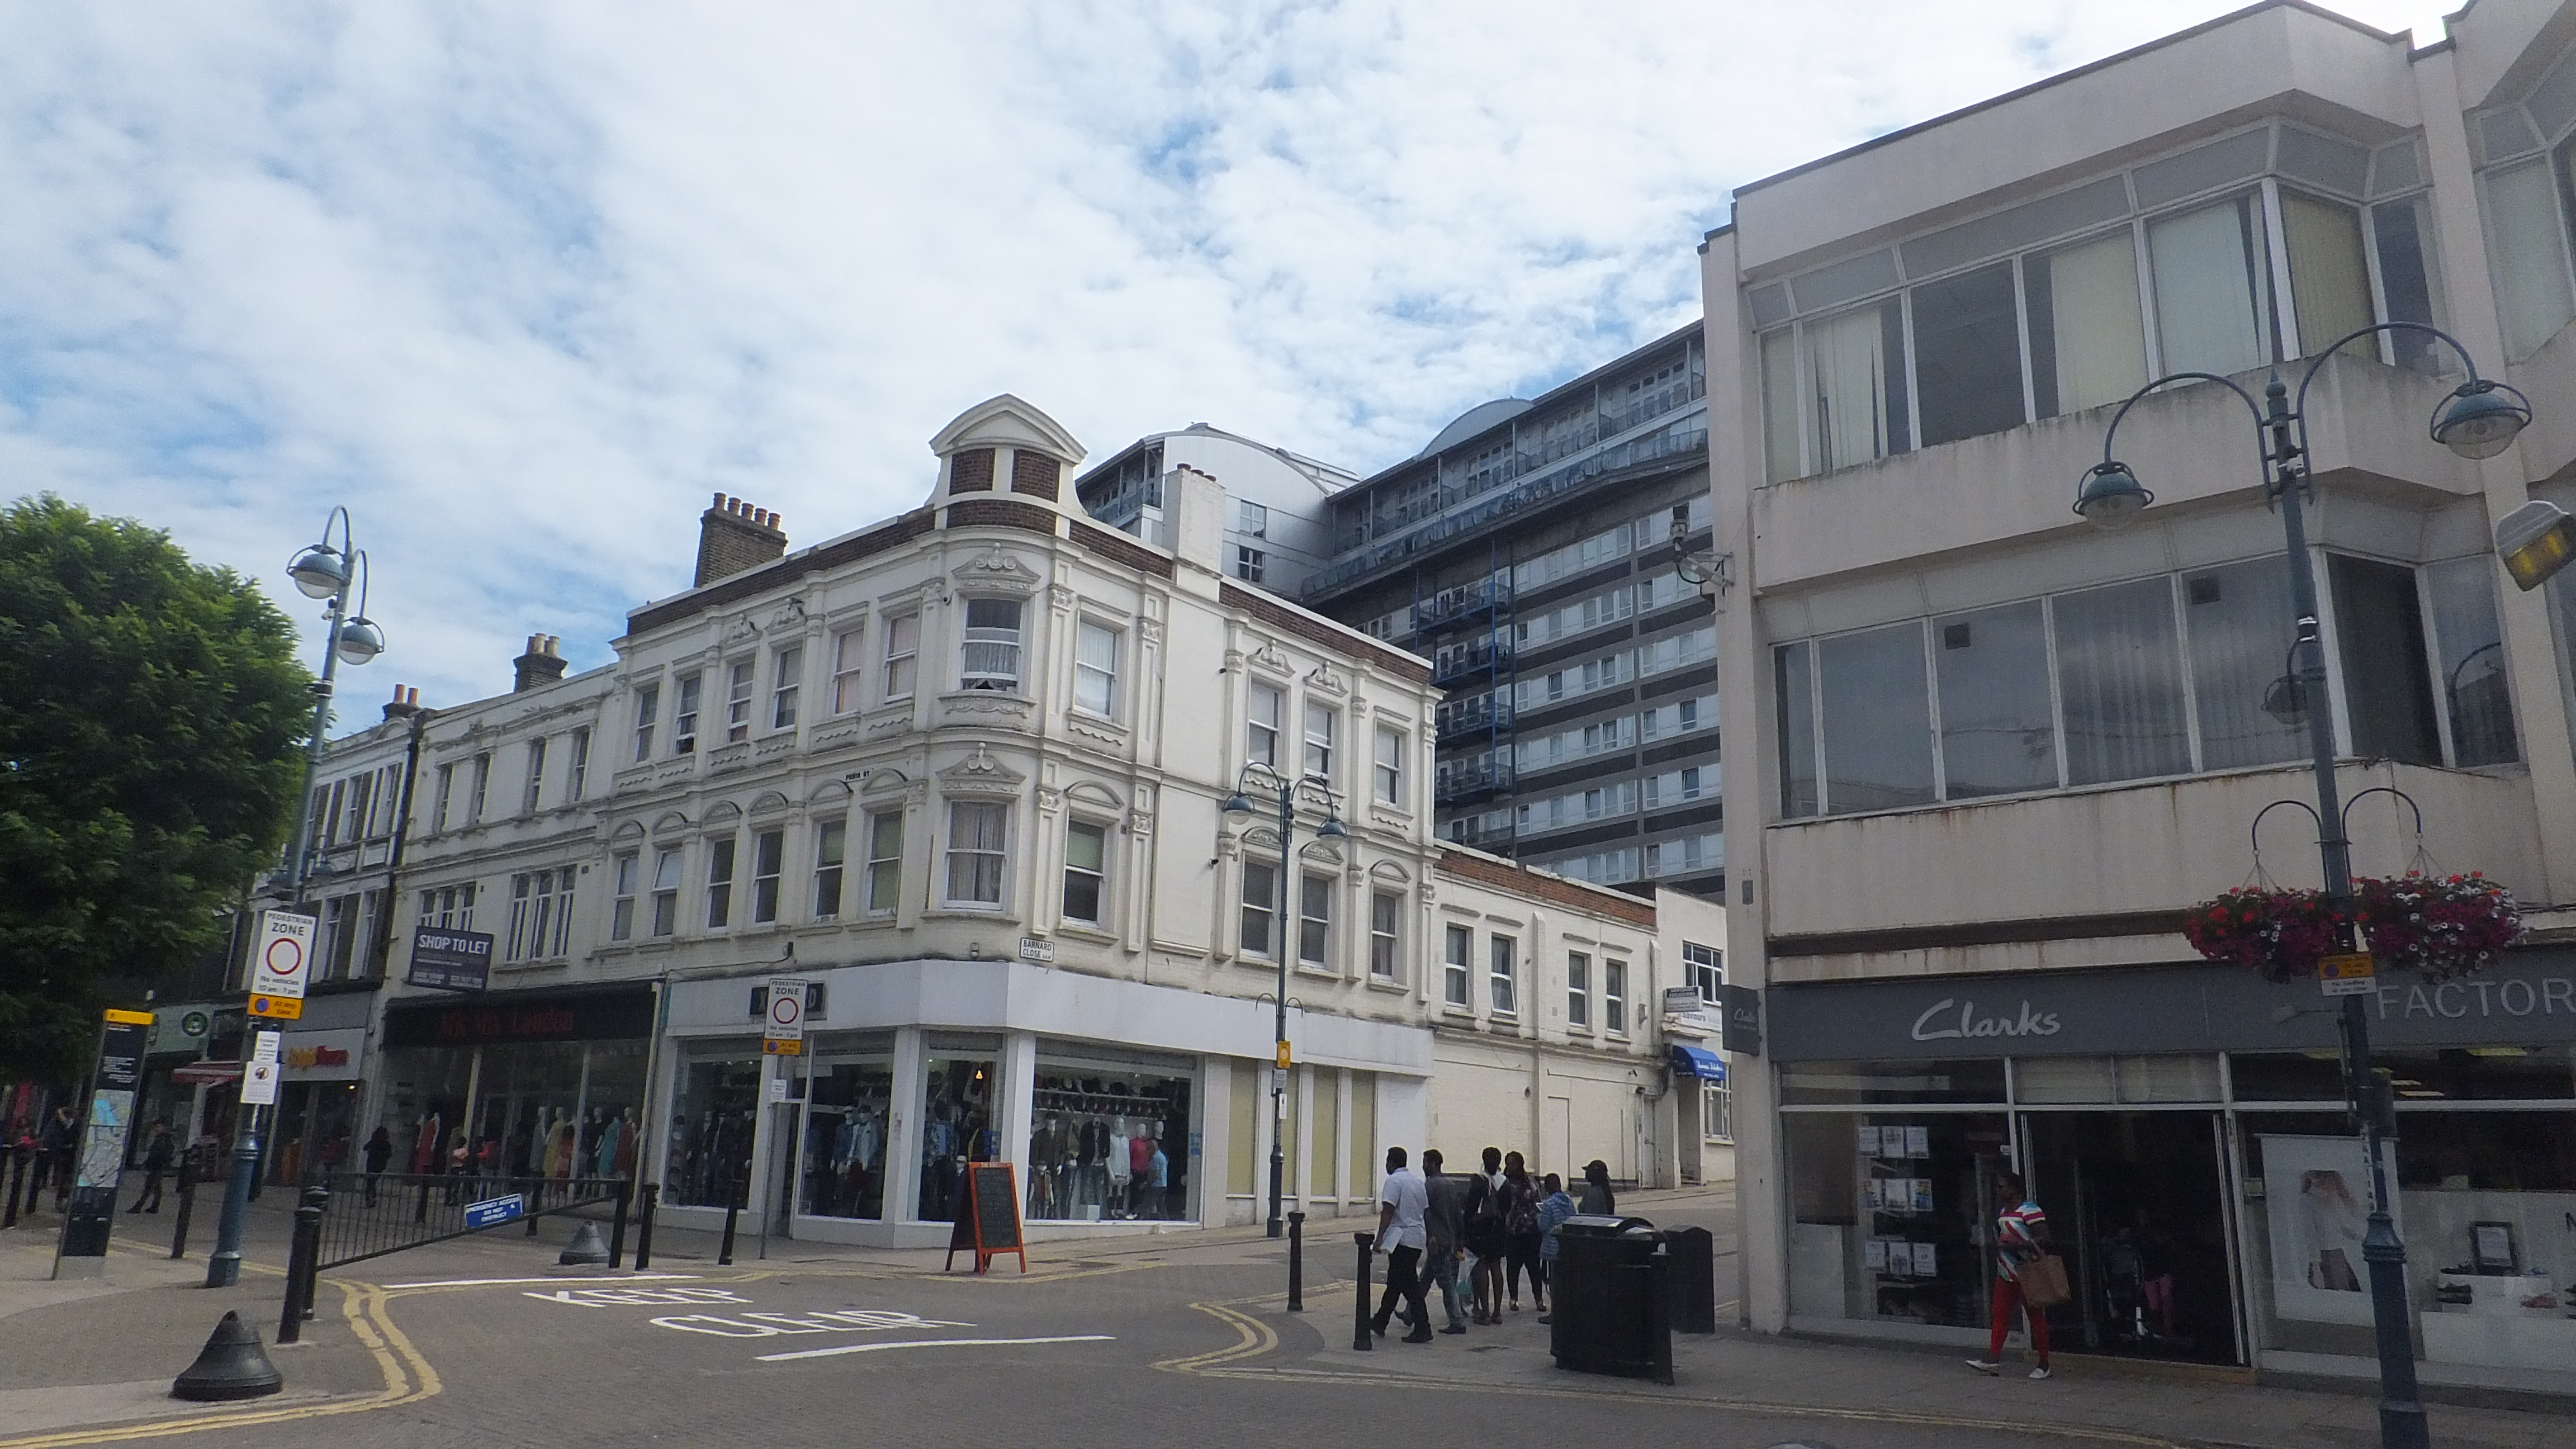 56 Woolwich town centre shops purchased by one of UK's largest developers